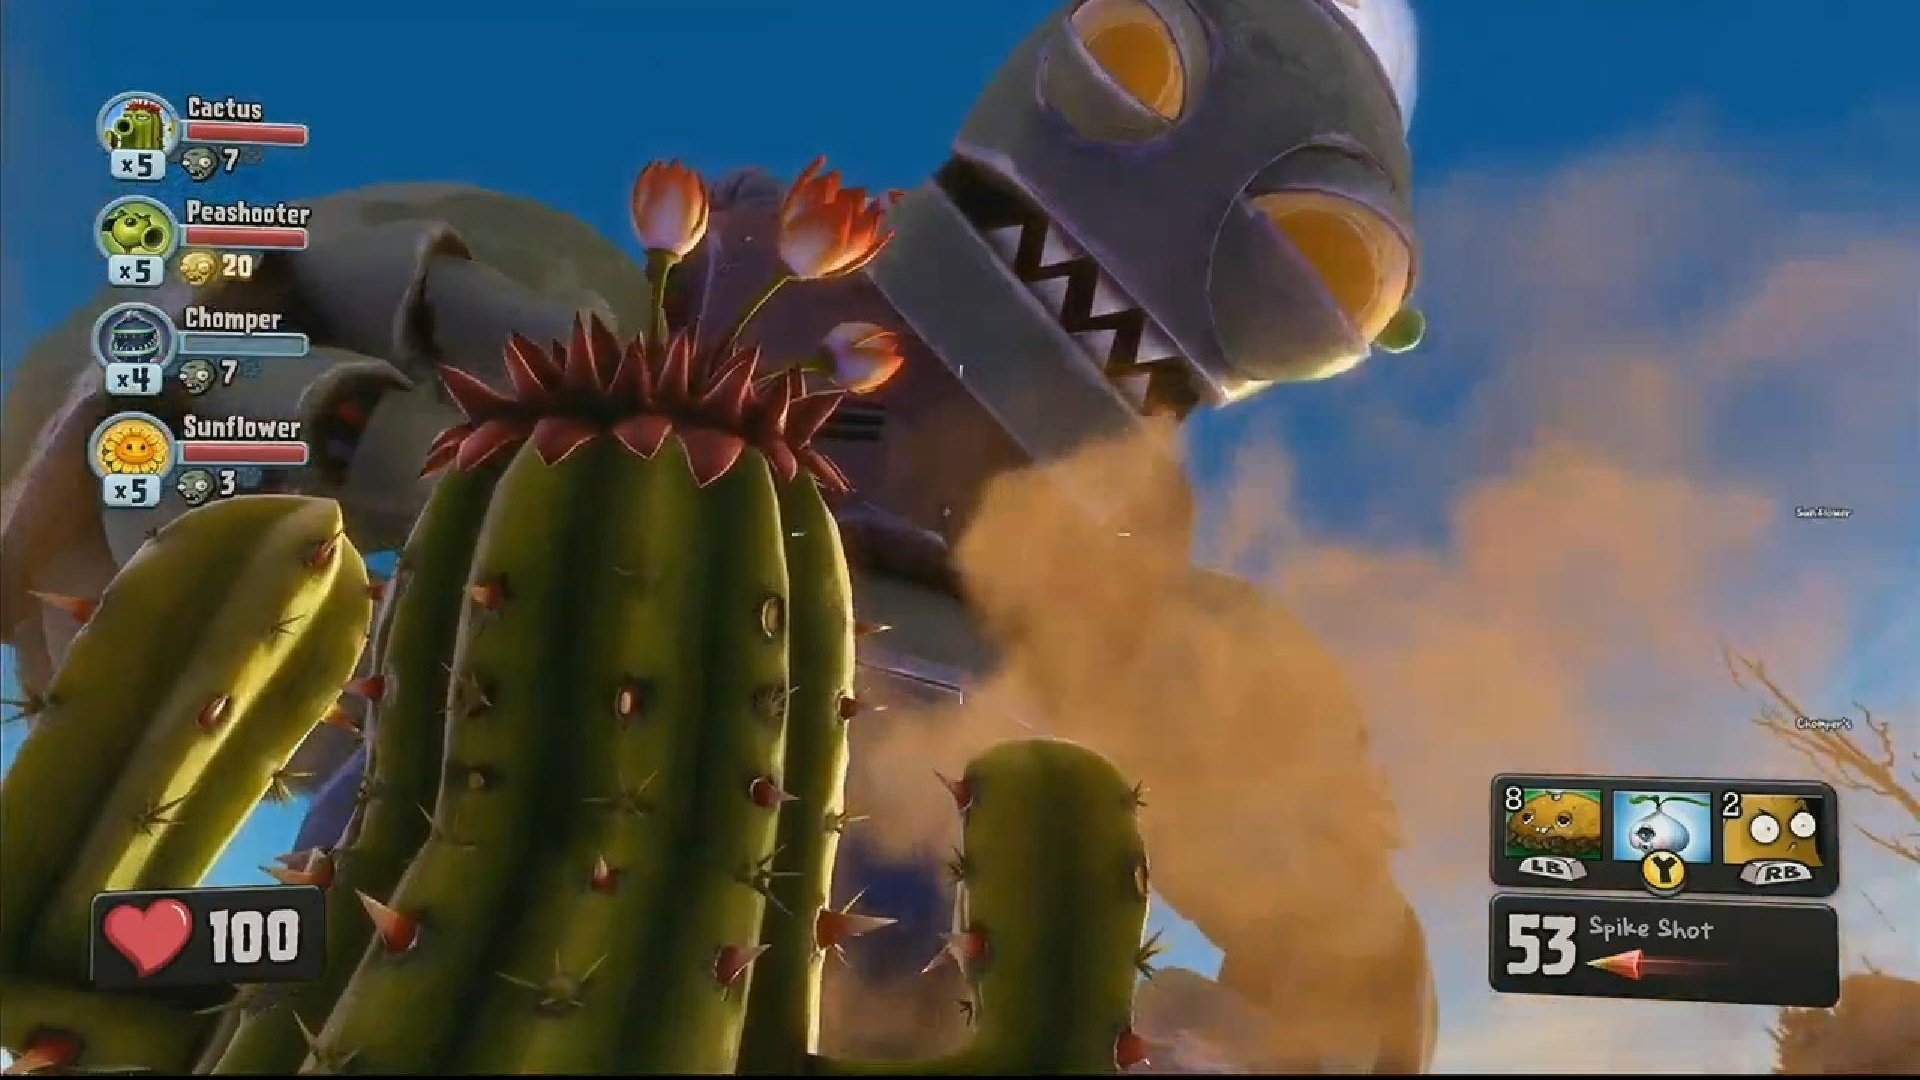 The zombies once again storm the yard and ignite garden warfare in this sequel to the quirky, one-of-a-kind strategy game Plants vs. Zombies. This game includes a bevy of new features, settings, and situations.